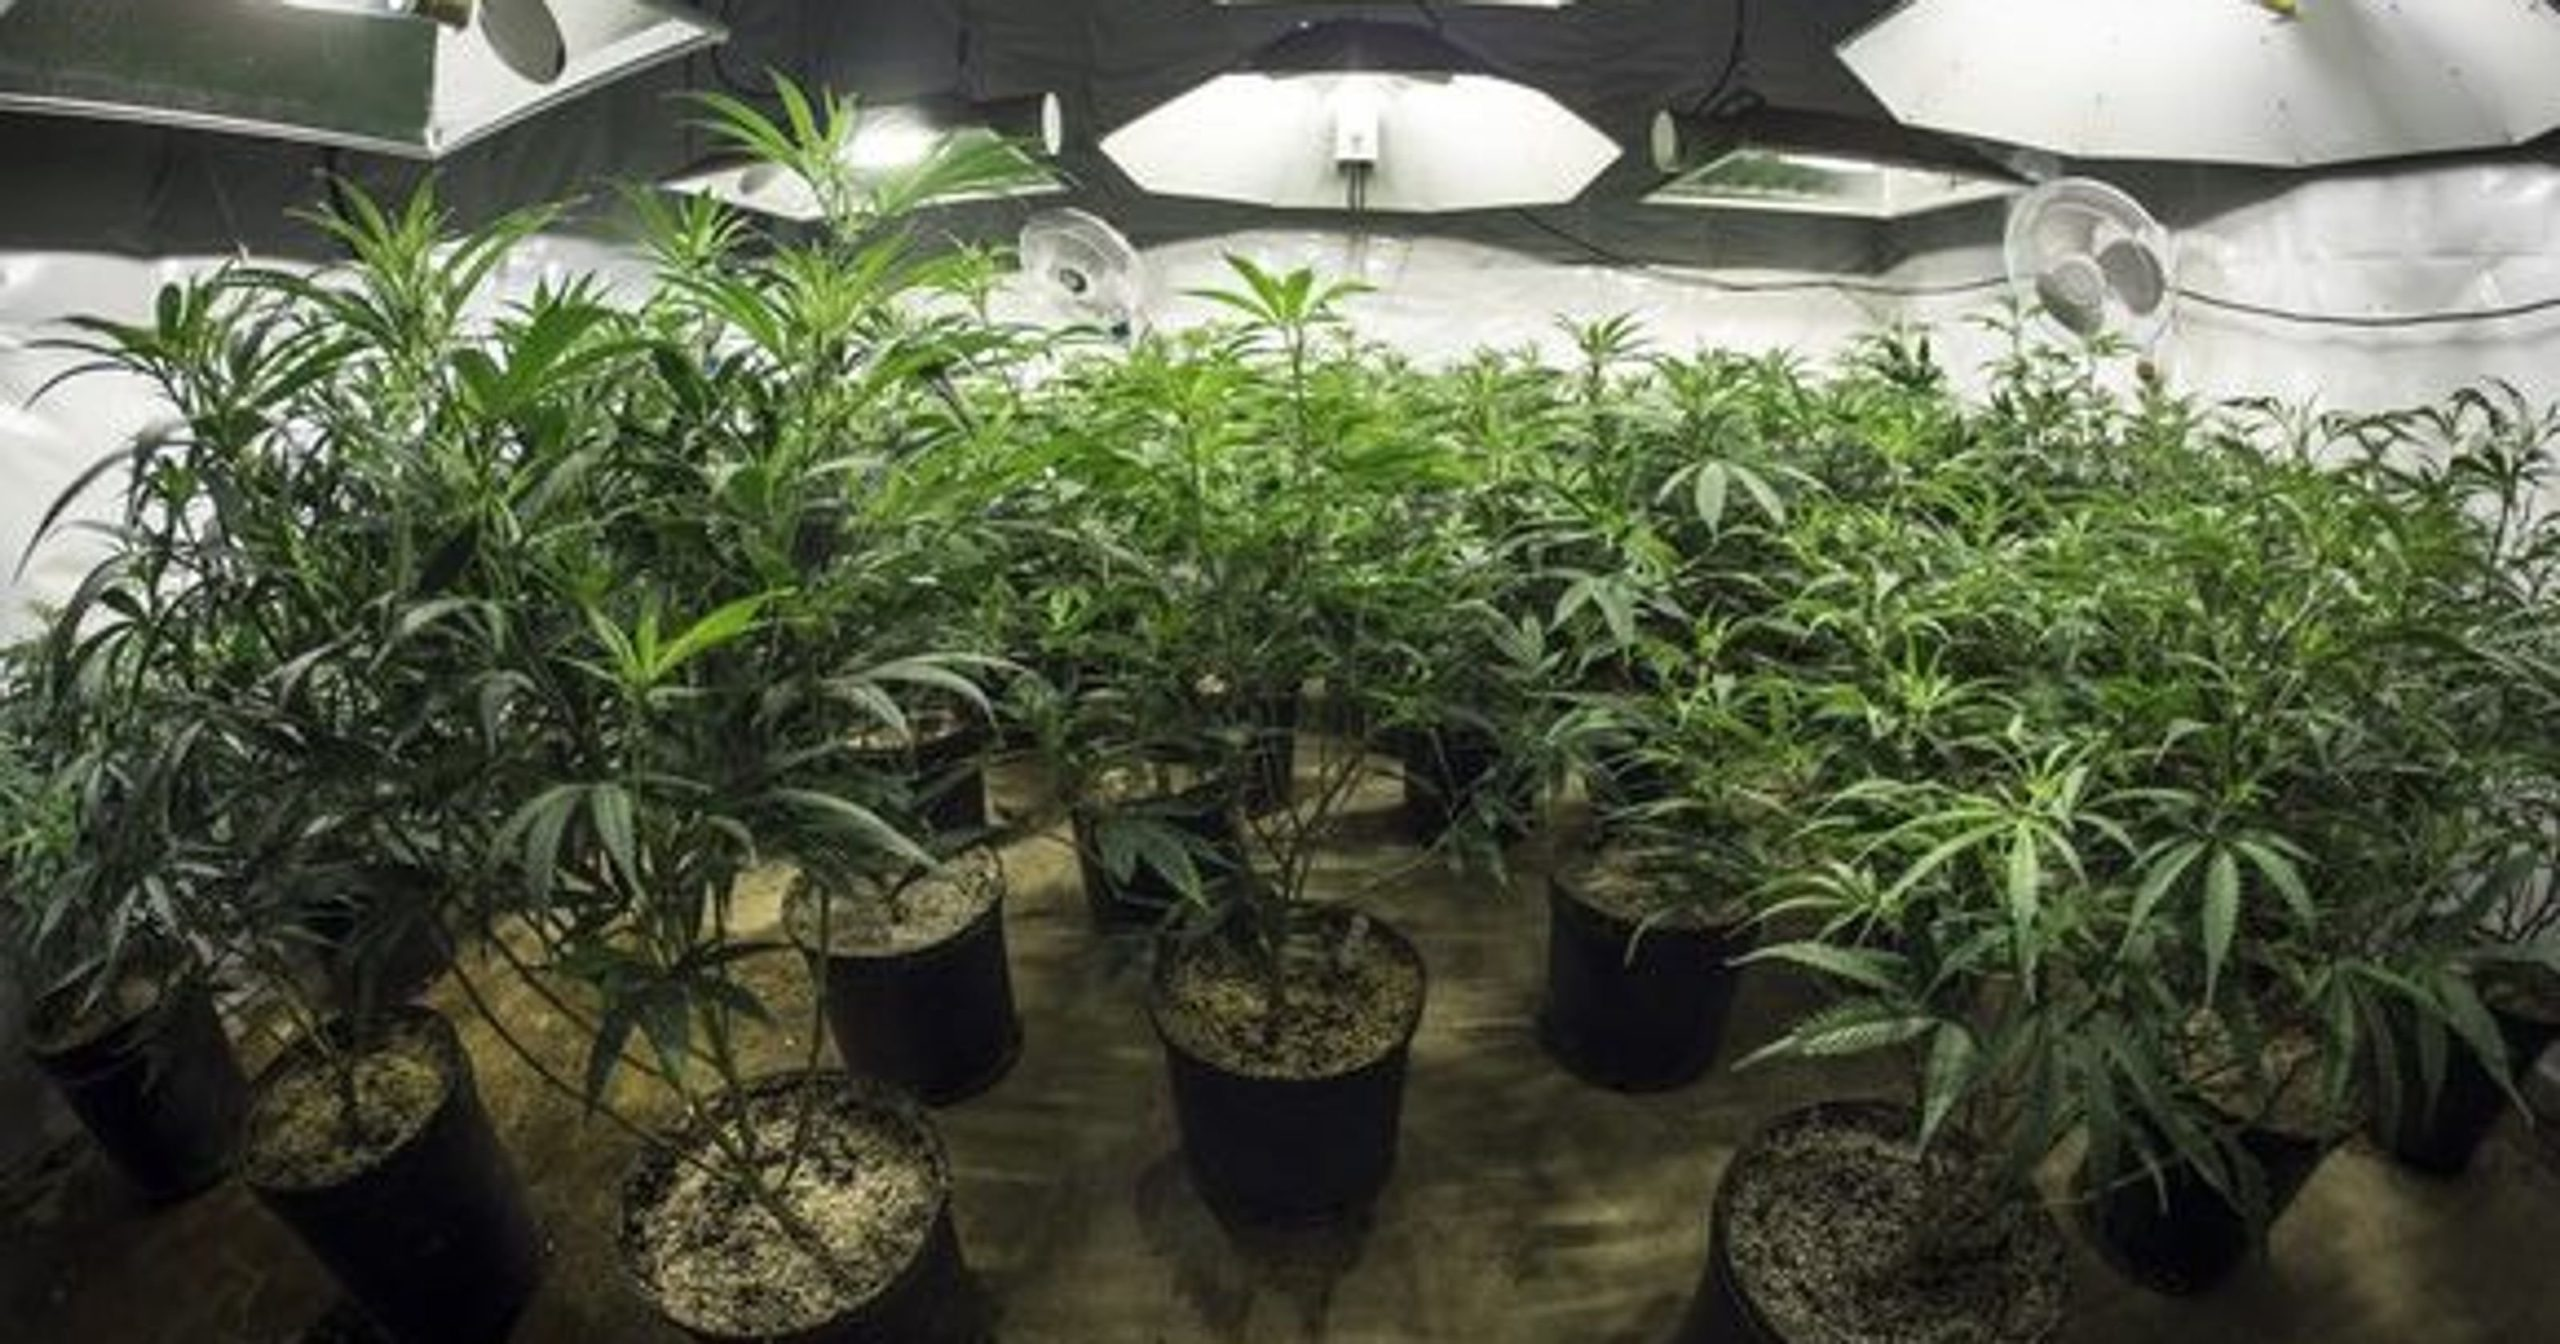 So, you want to grow your own weed? Here's a simple guide to breeding